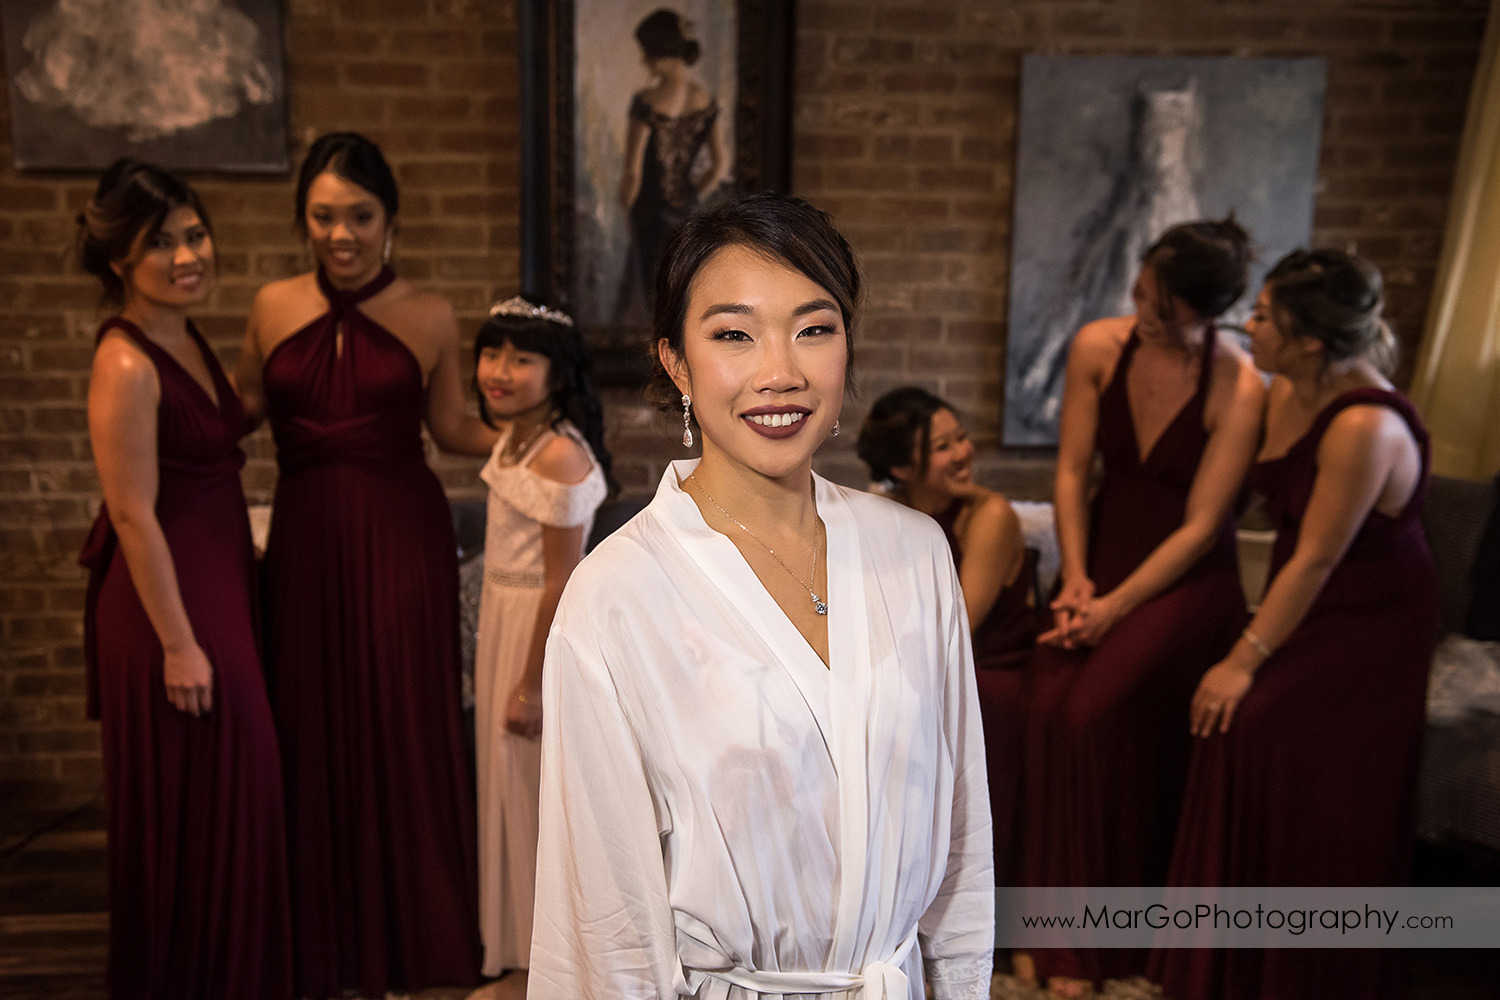 bride in white robe with bridesmaids in the background at Sunol's Casa Bella bridal suite